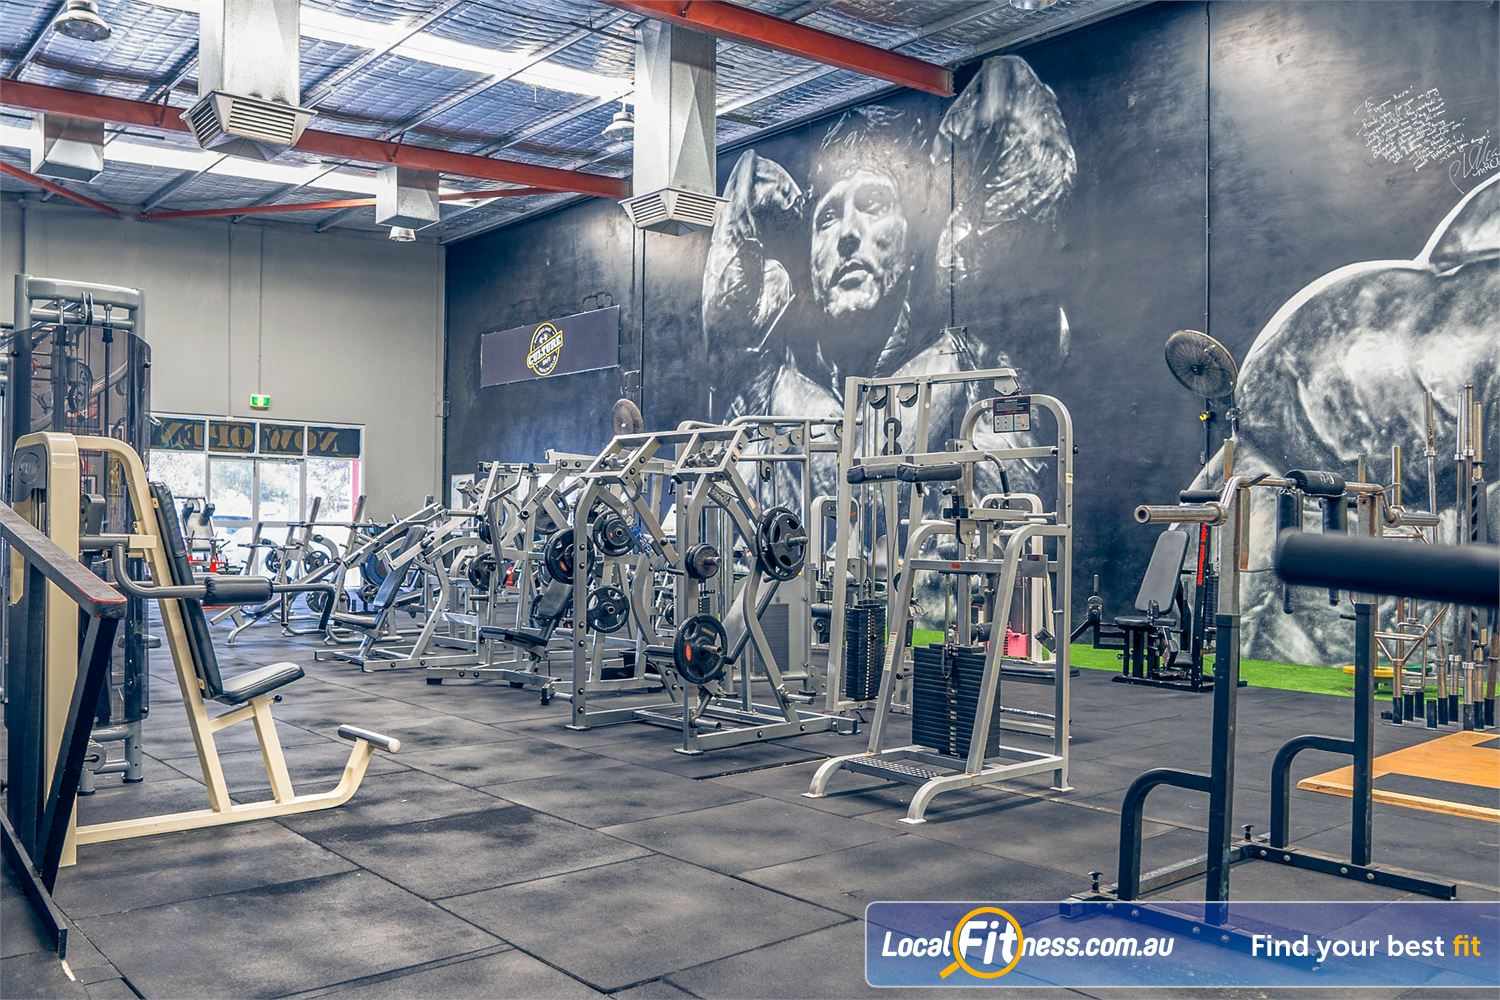 Culture 24:7 Near Joondalup Dc Our Wanneroo gym provides 24 hour access 365 days a year so train when you want!